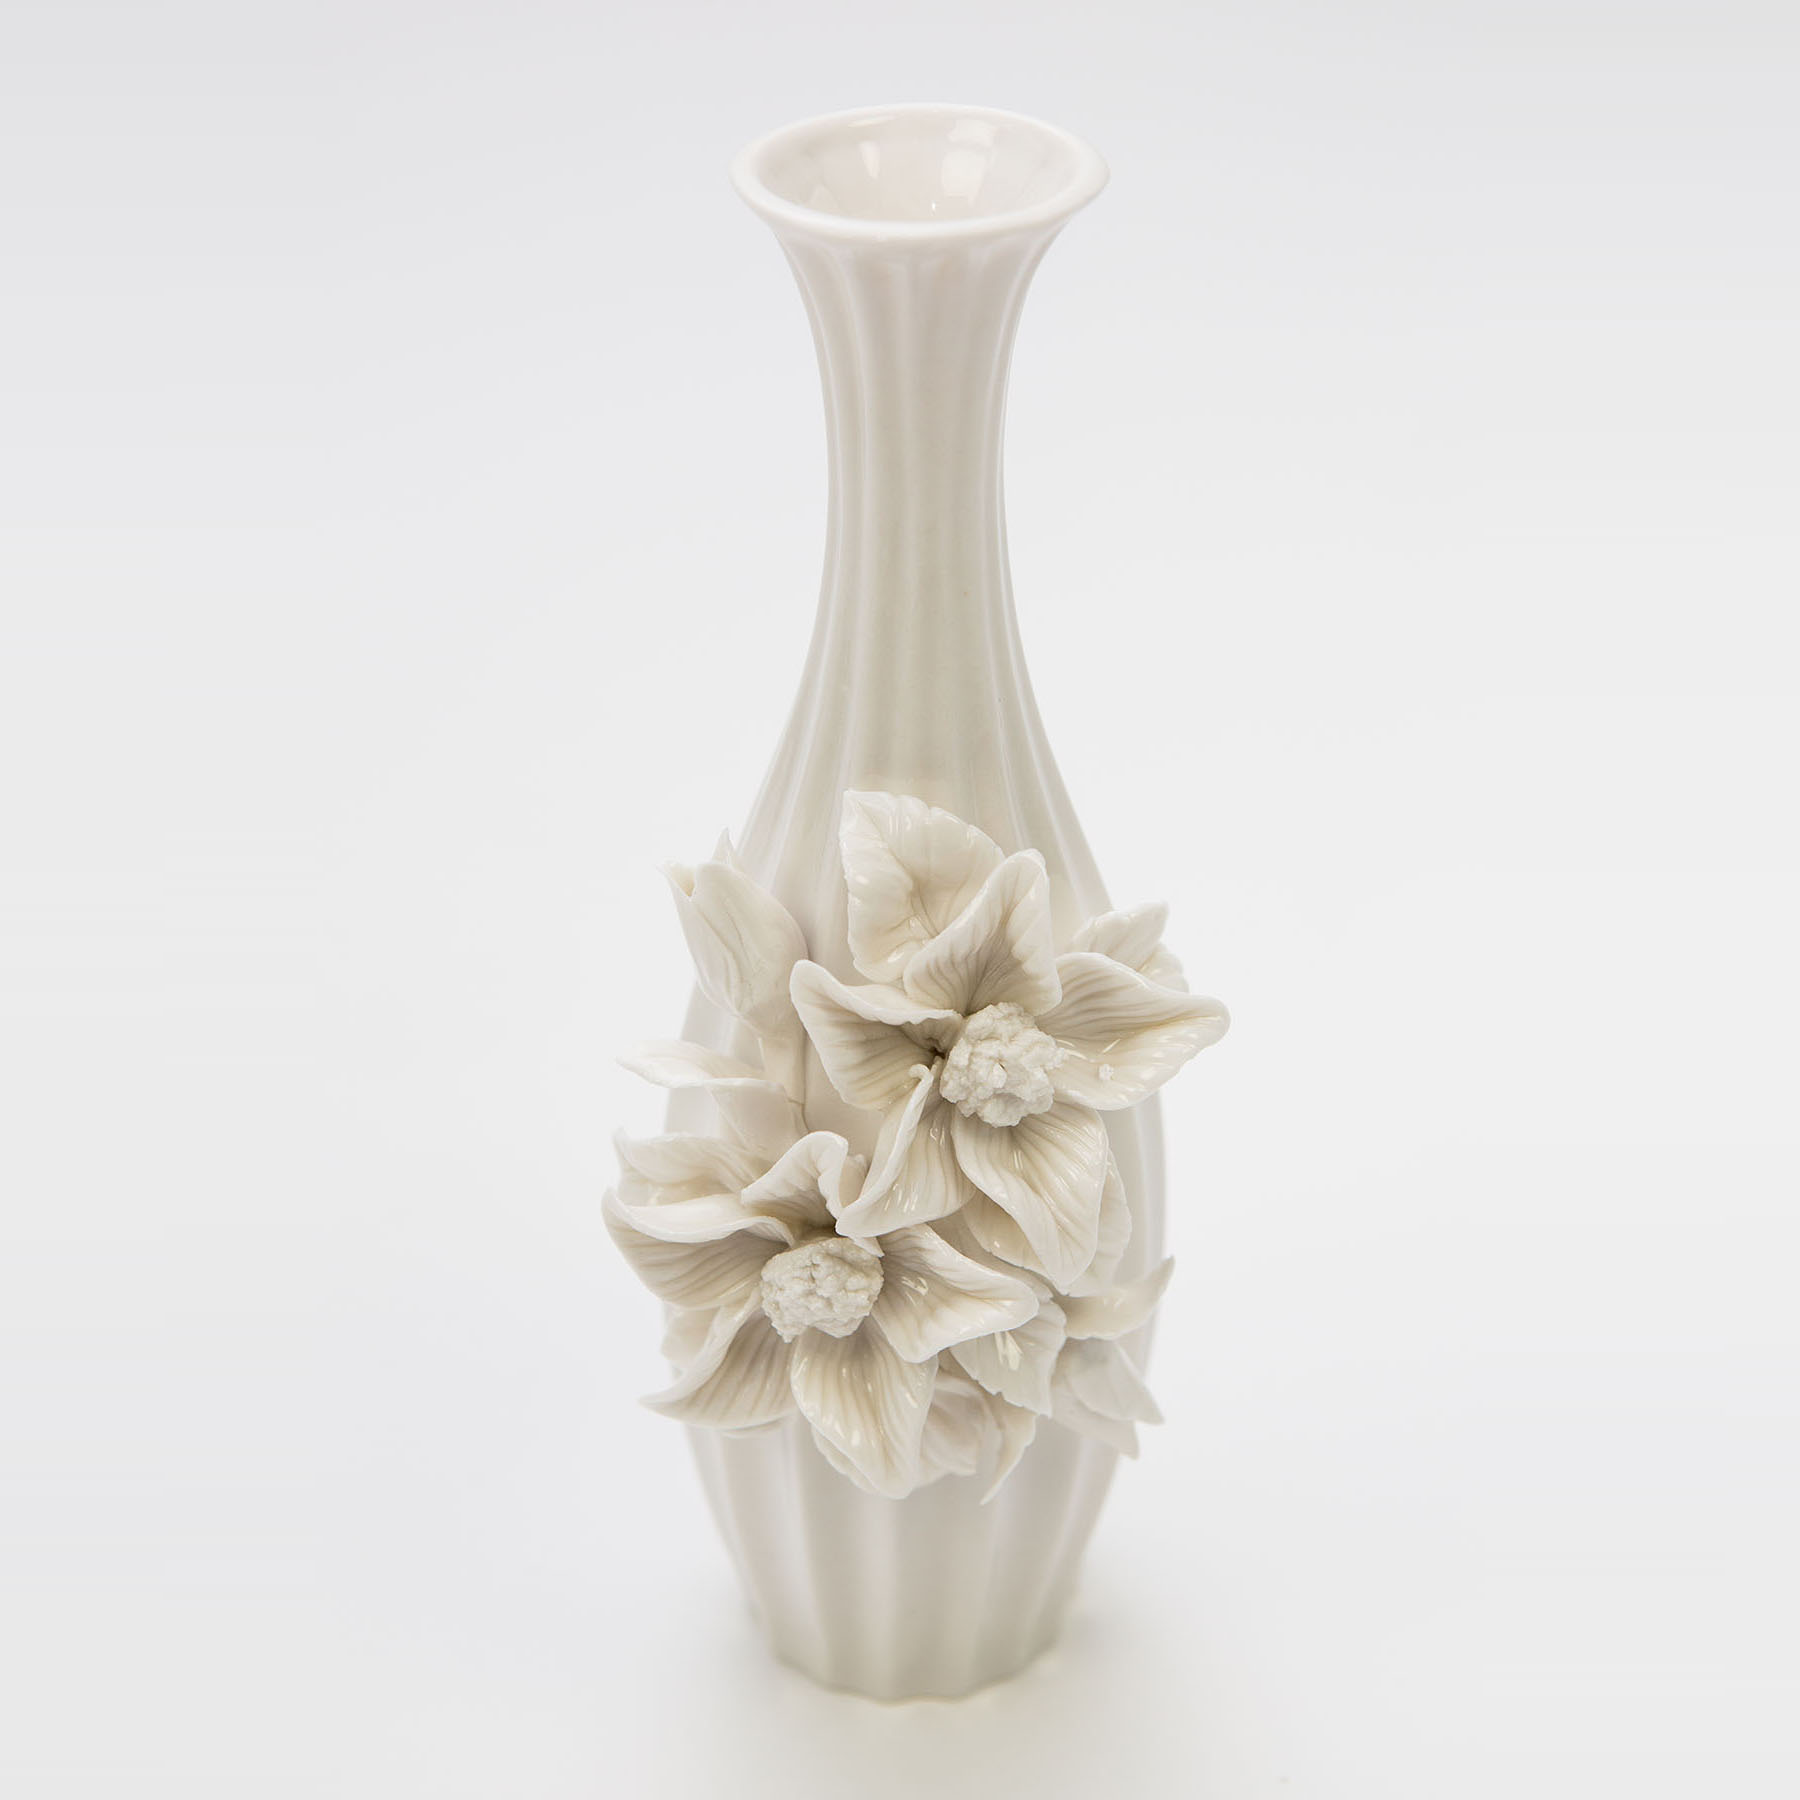 Vase amaryllis location d coration vintage catalogue for Vase amaryllis